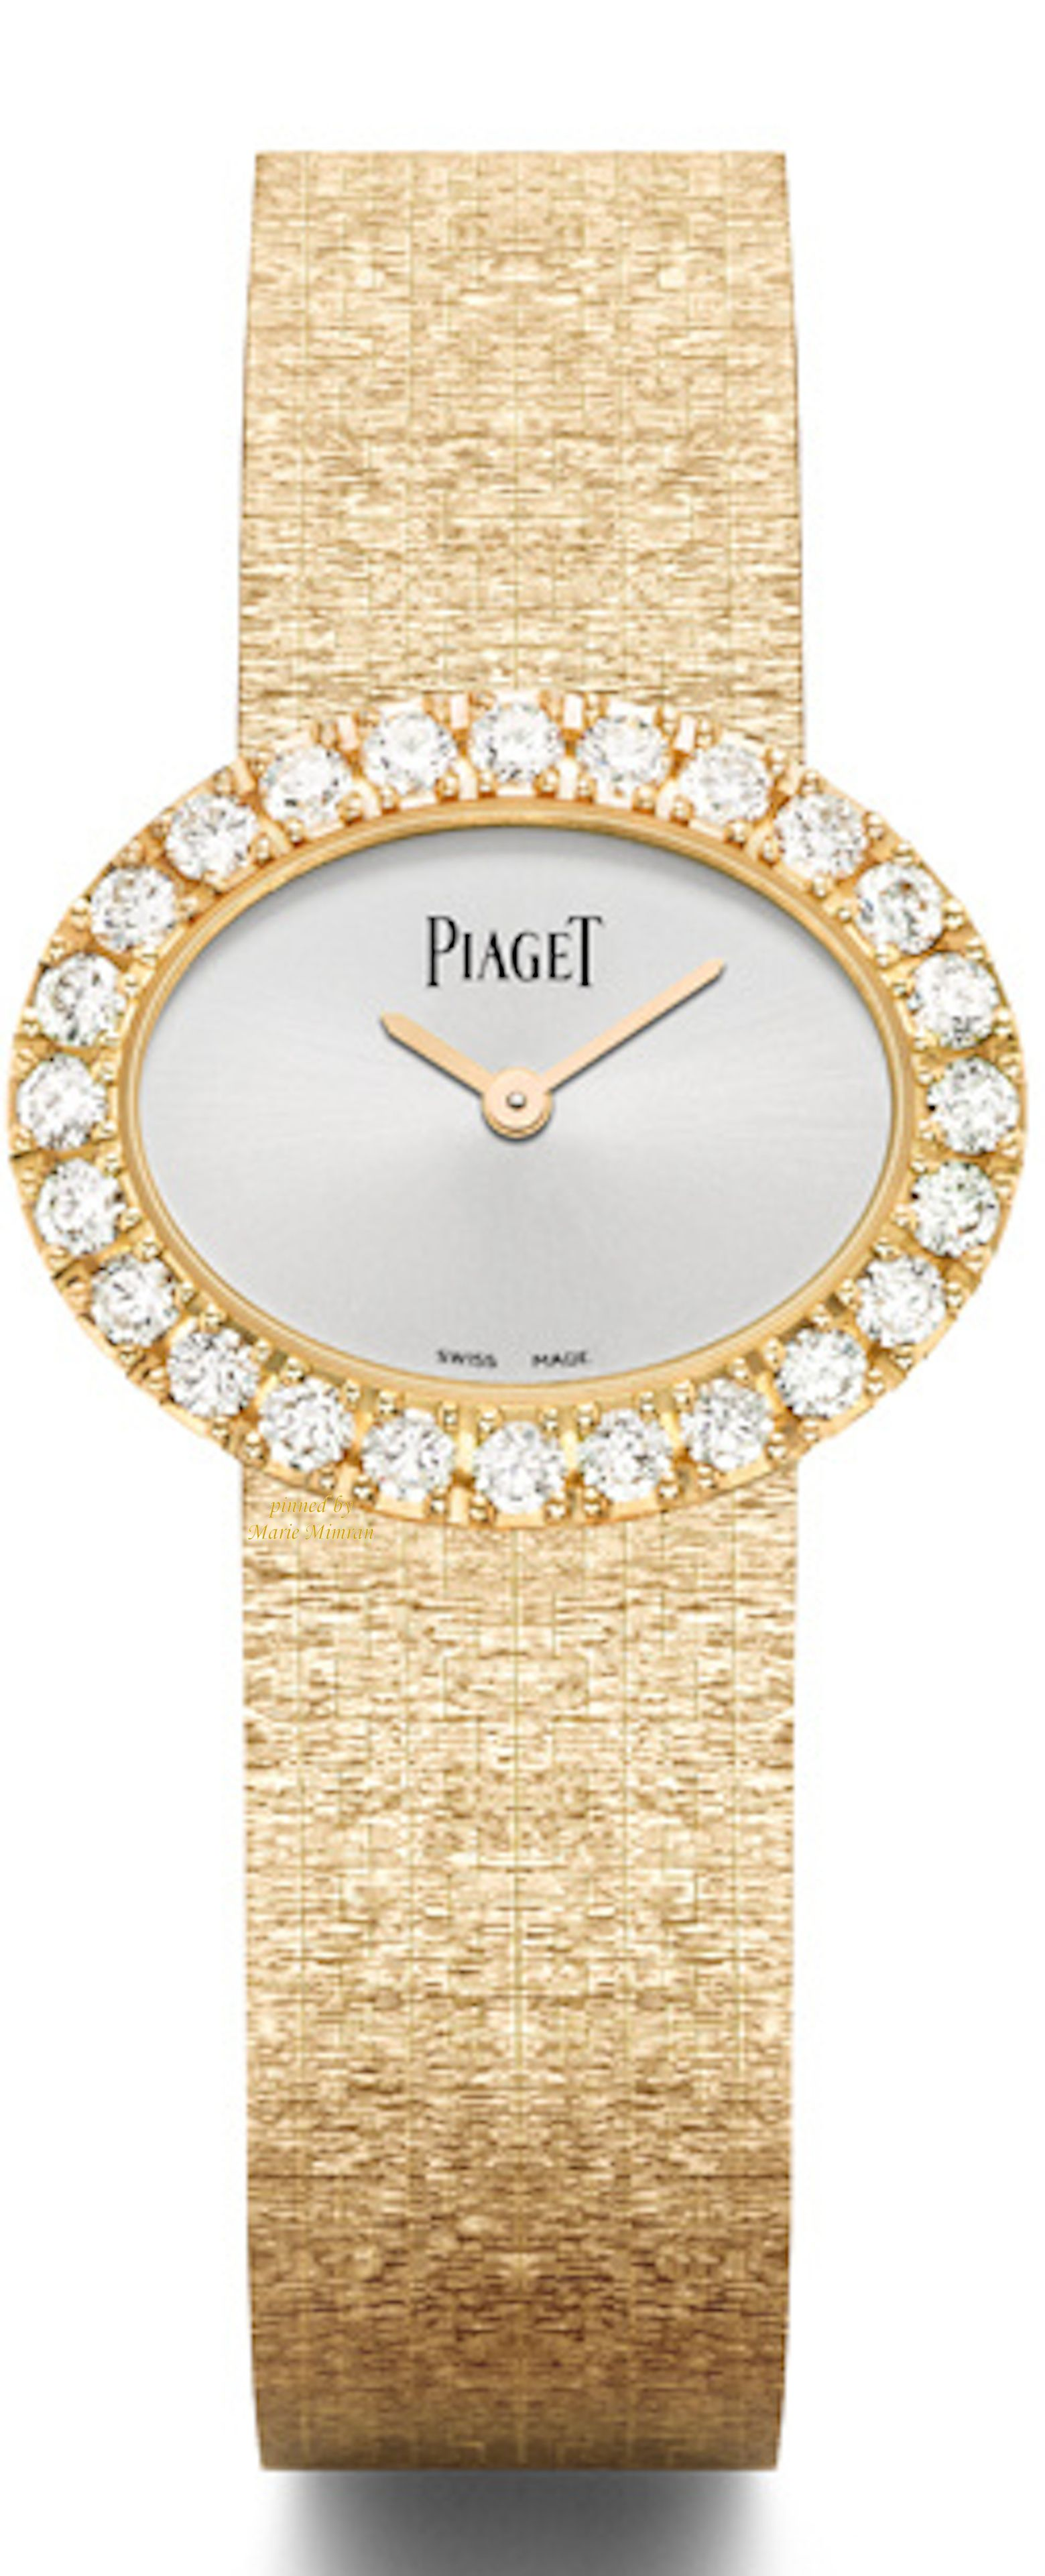 f2c17de218e Piaget Traditional oval watches – FHH Journal